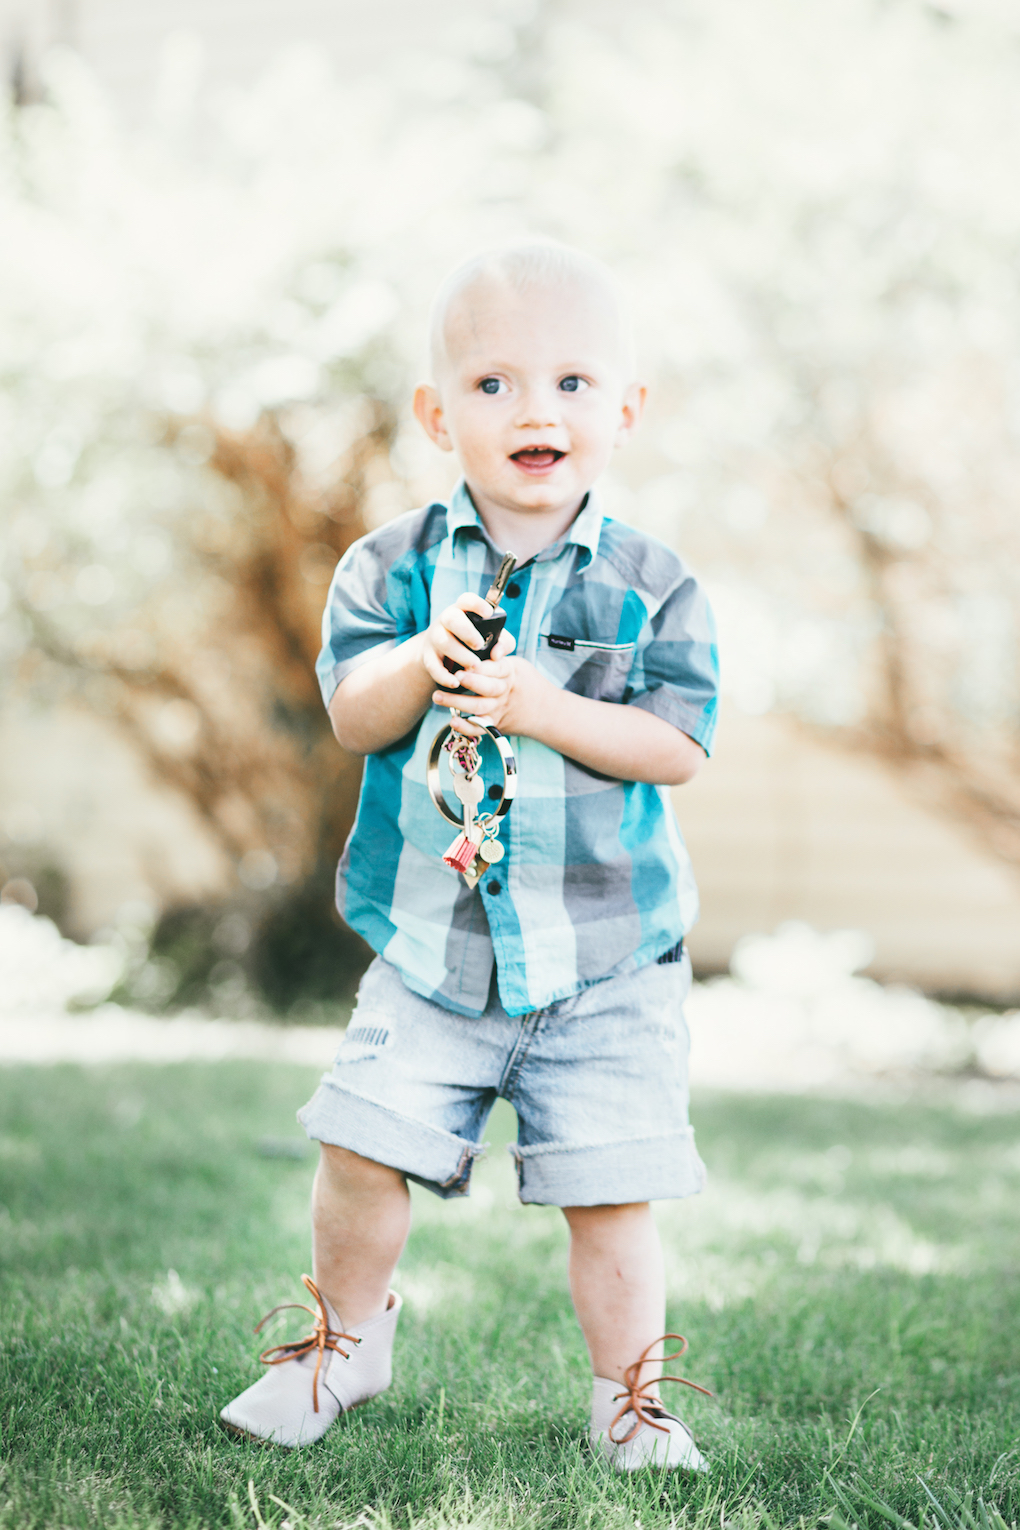 blonde little boy playing on the grass with keys wearing a checked turquoise button up shirt, cut off shorts, and mon petite shoes